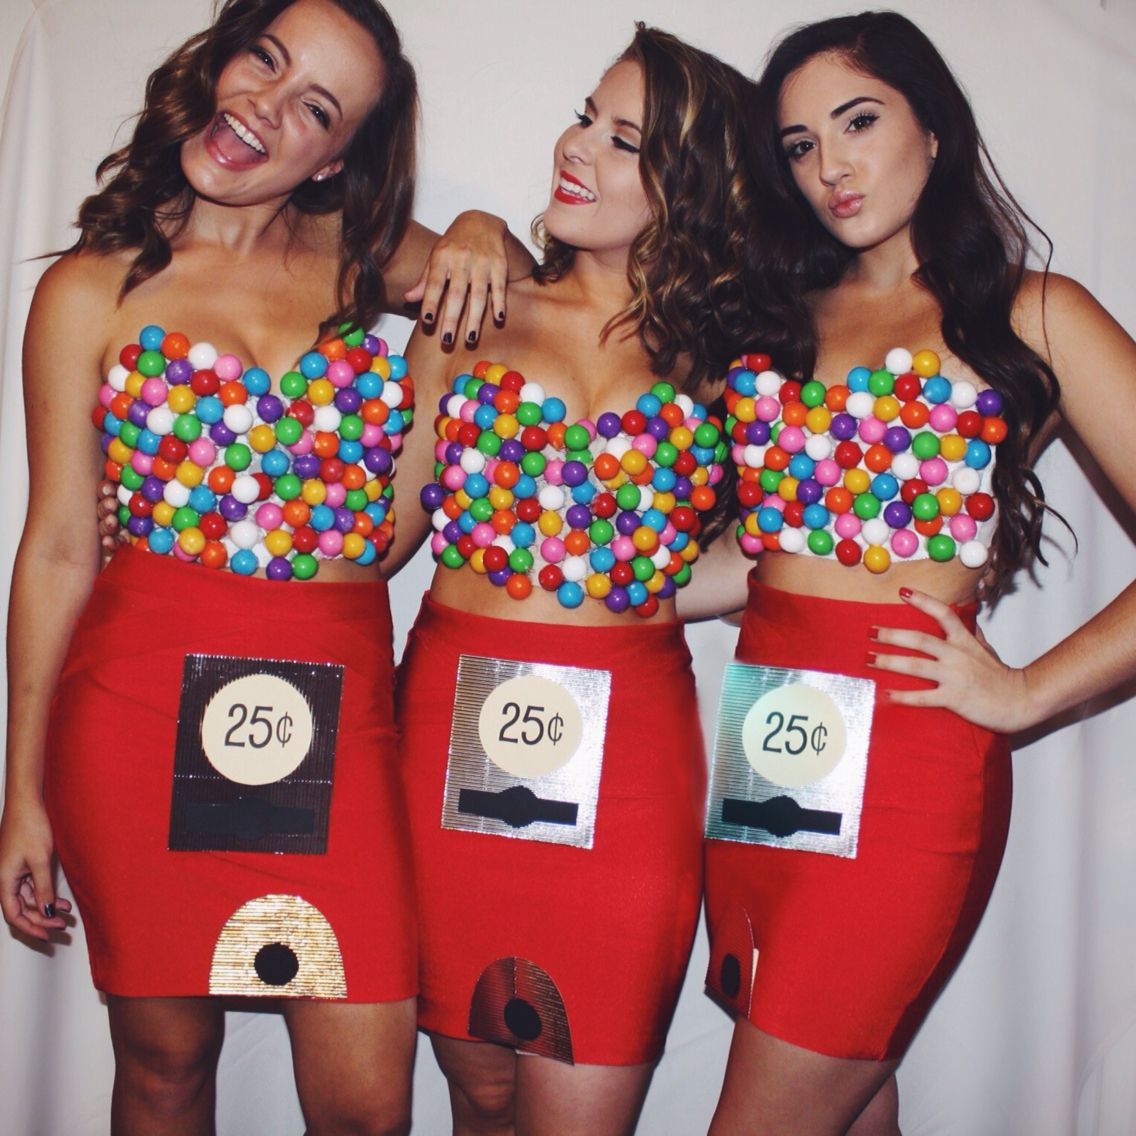 Diy gumball machine halloween costumes holiday spirit diy gumball machine halloween costumes solutioingenieria Image collections